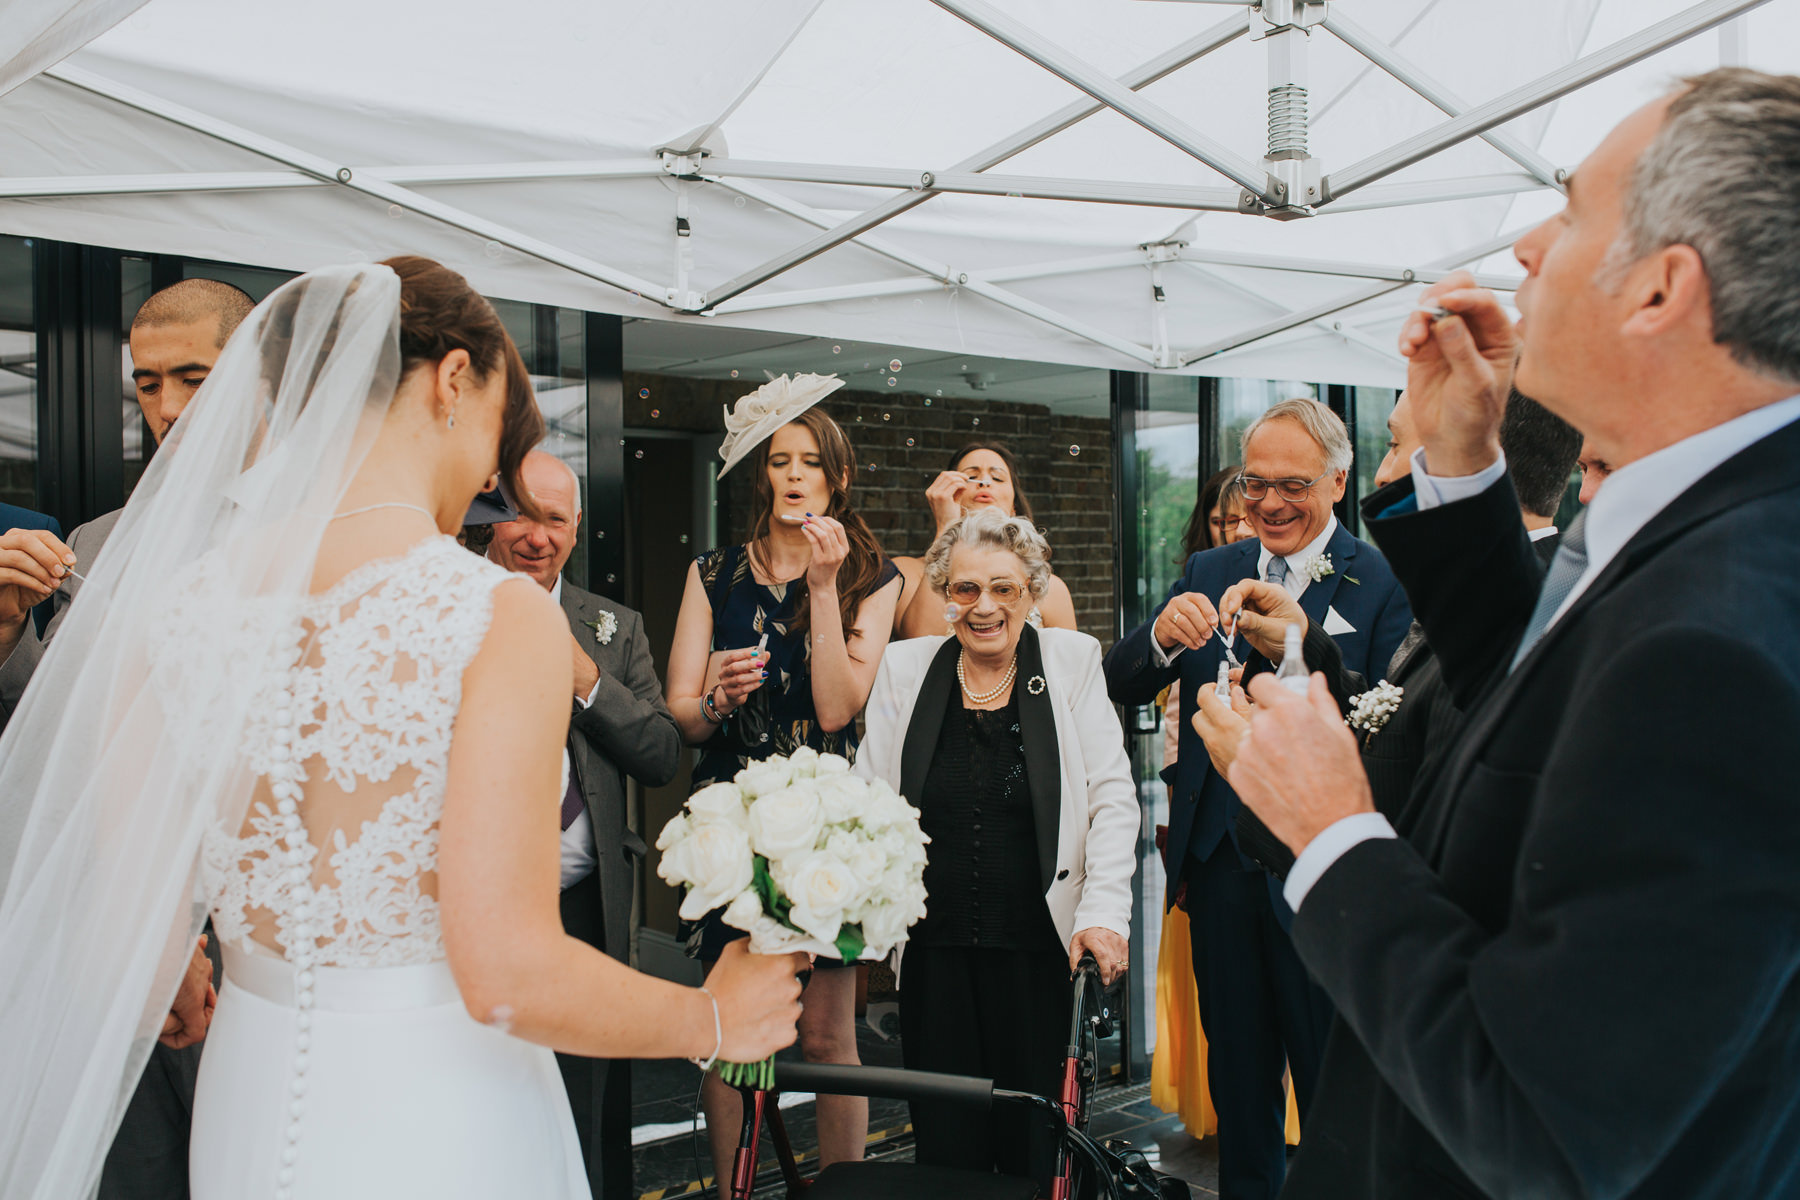 CRL-229-The Bingham Wedding Richmond-groom bride guests blowing bubbles.jpg